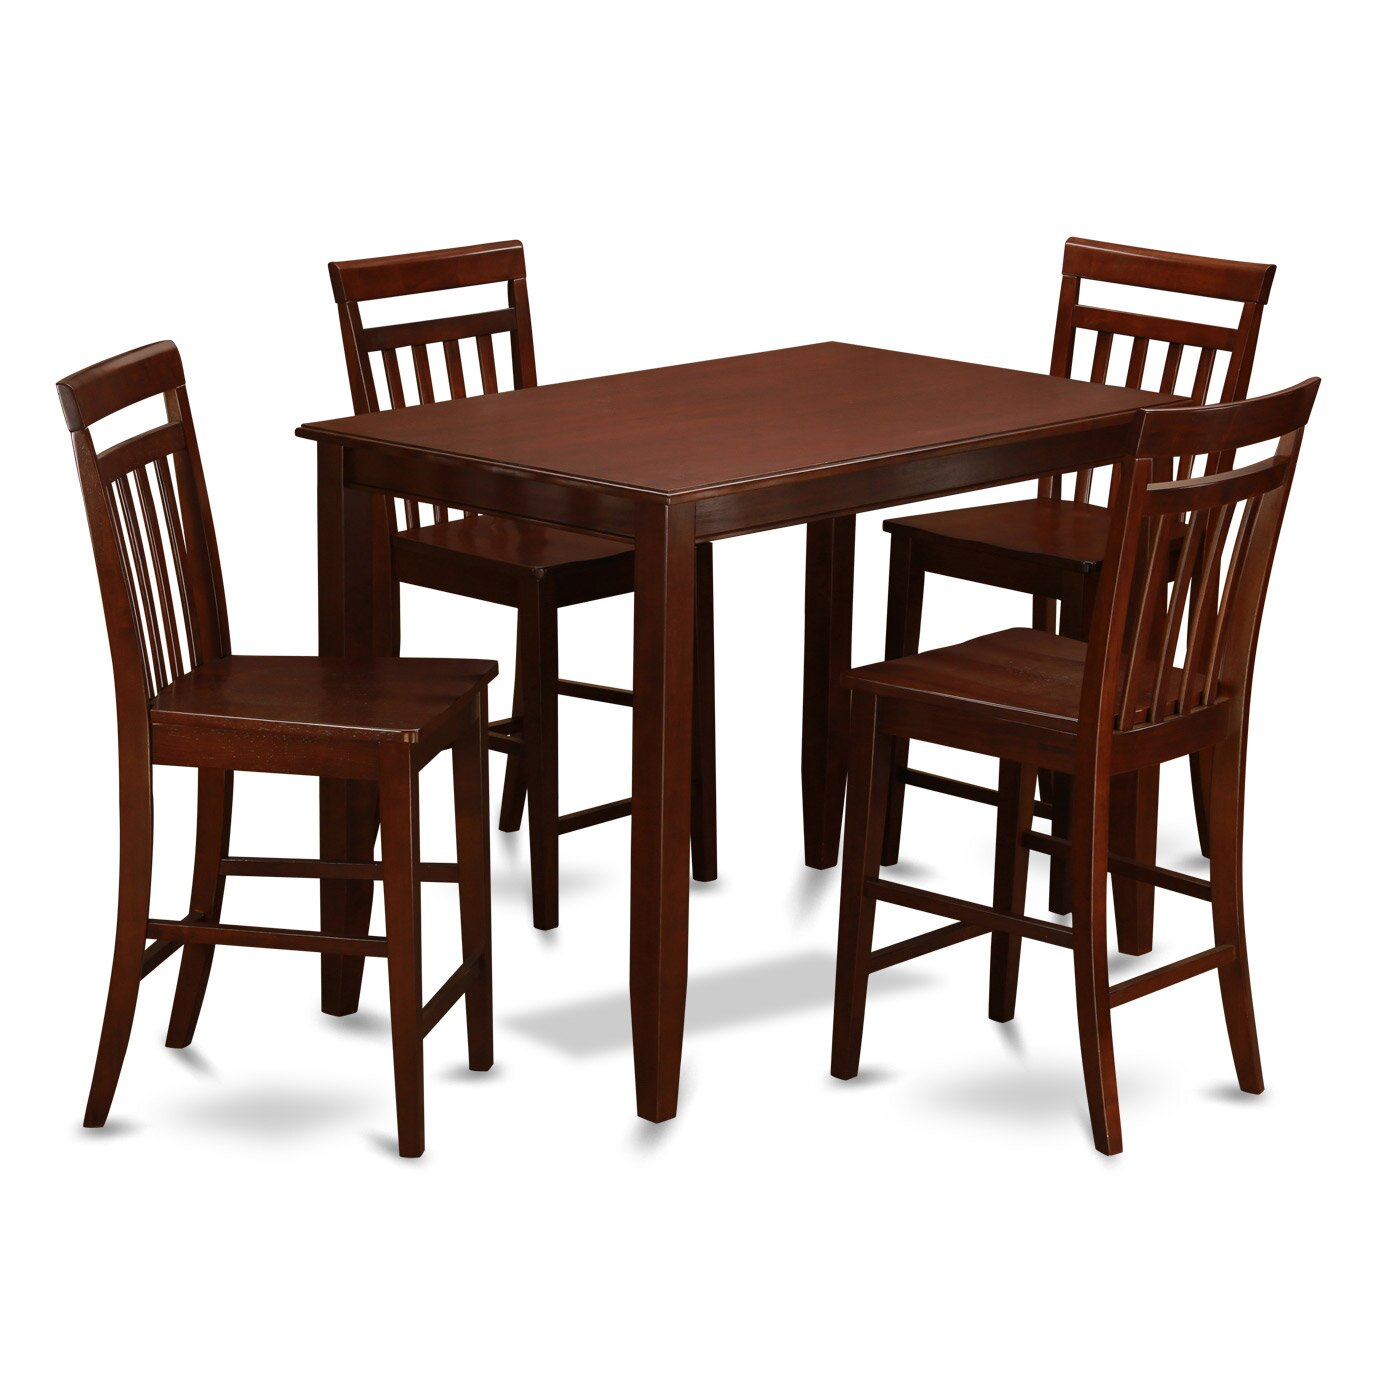 East west buckland 5 piece counter height dining set Counter seating